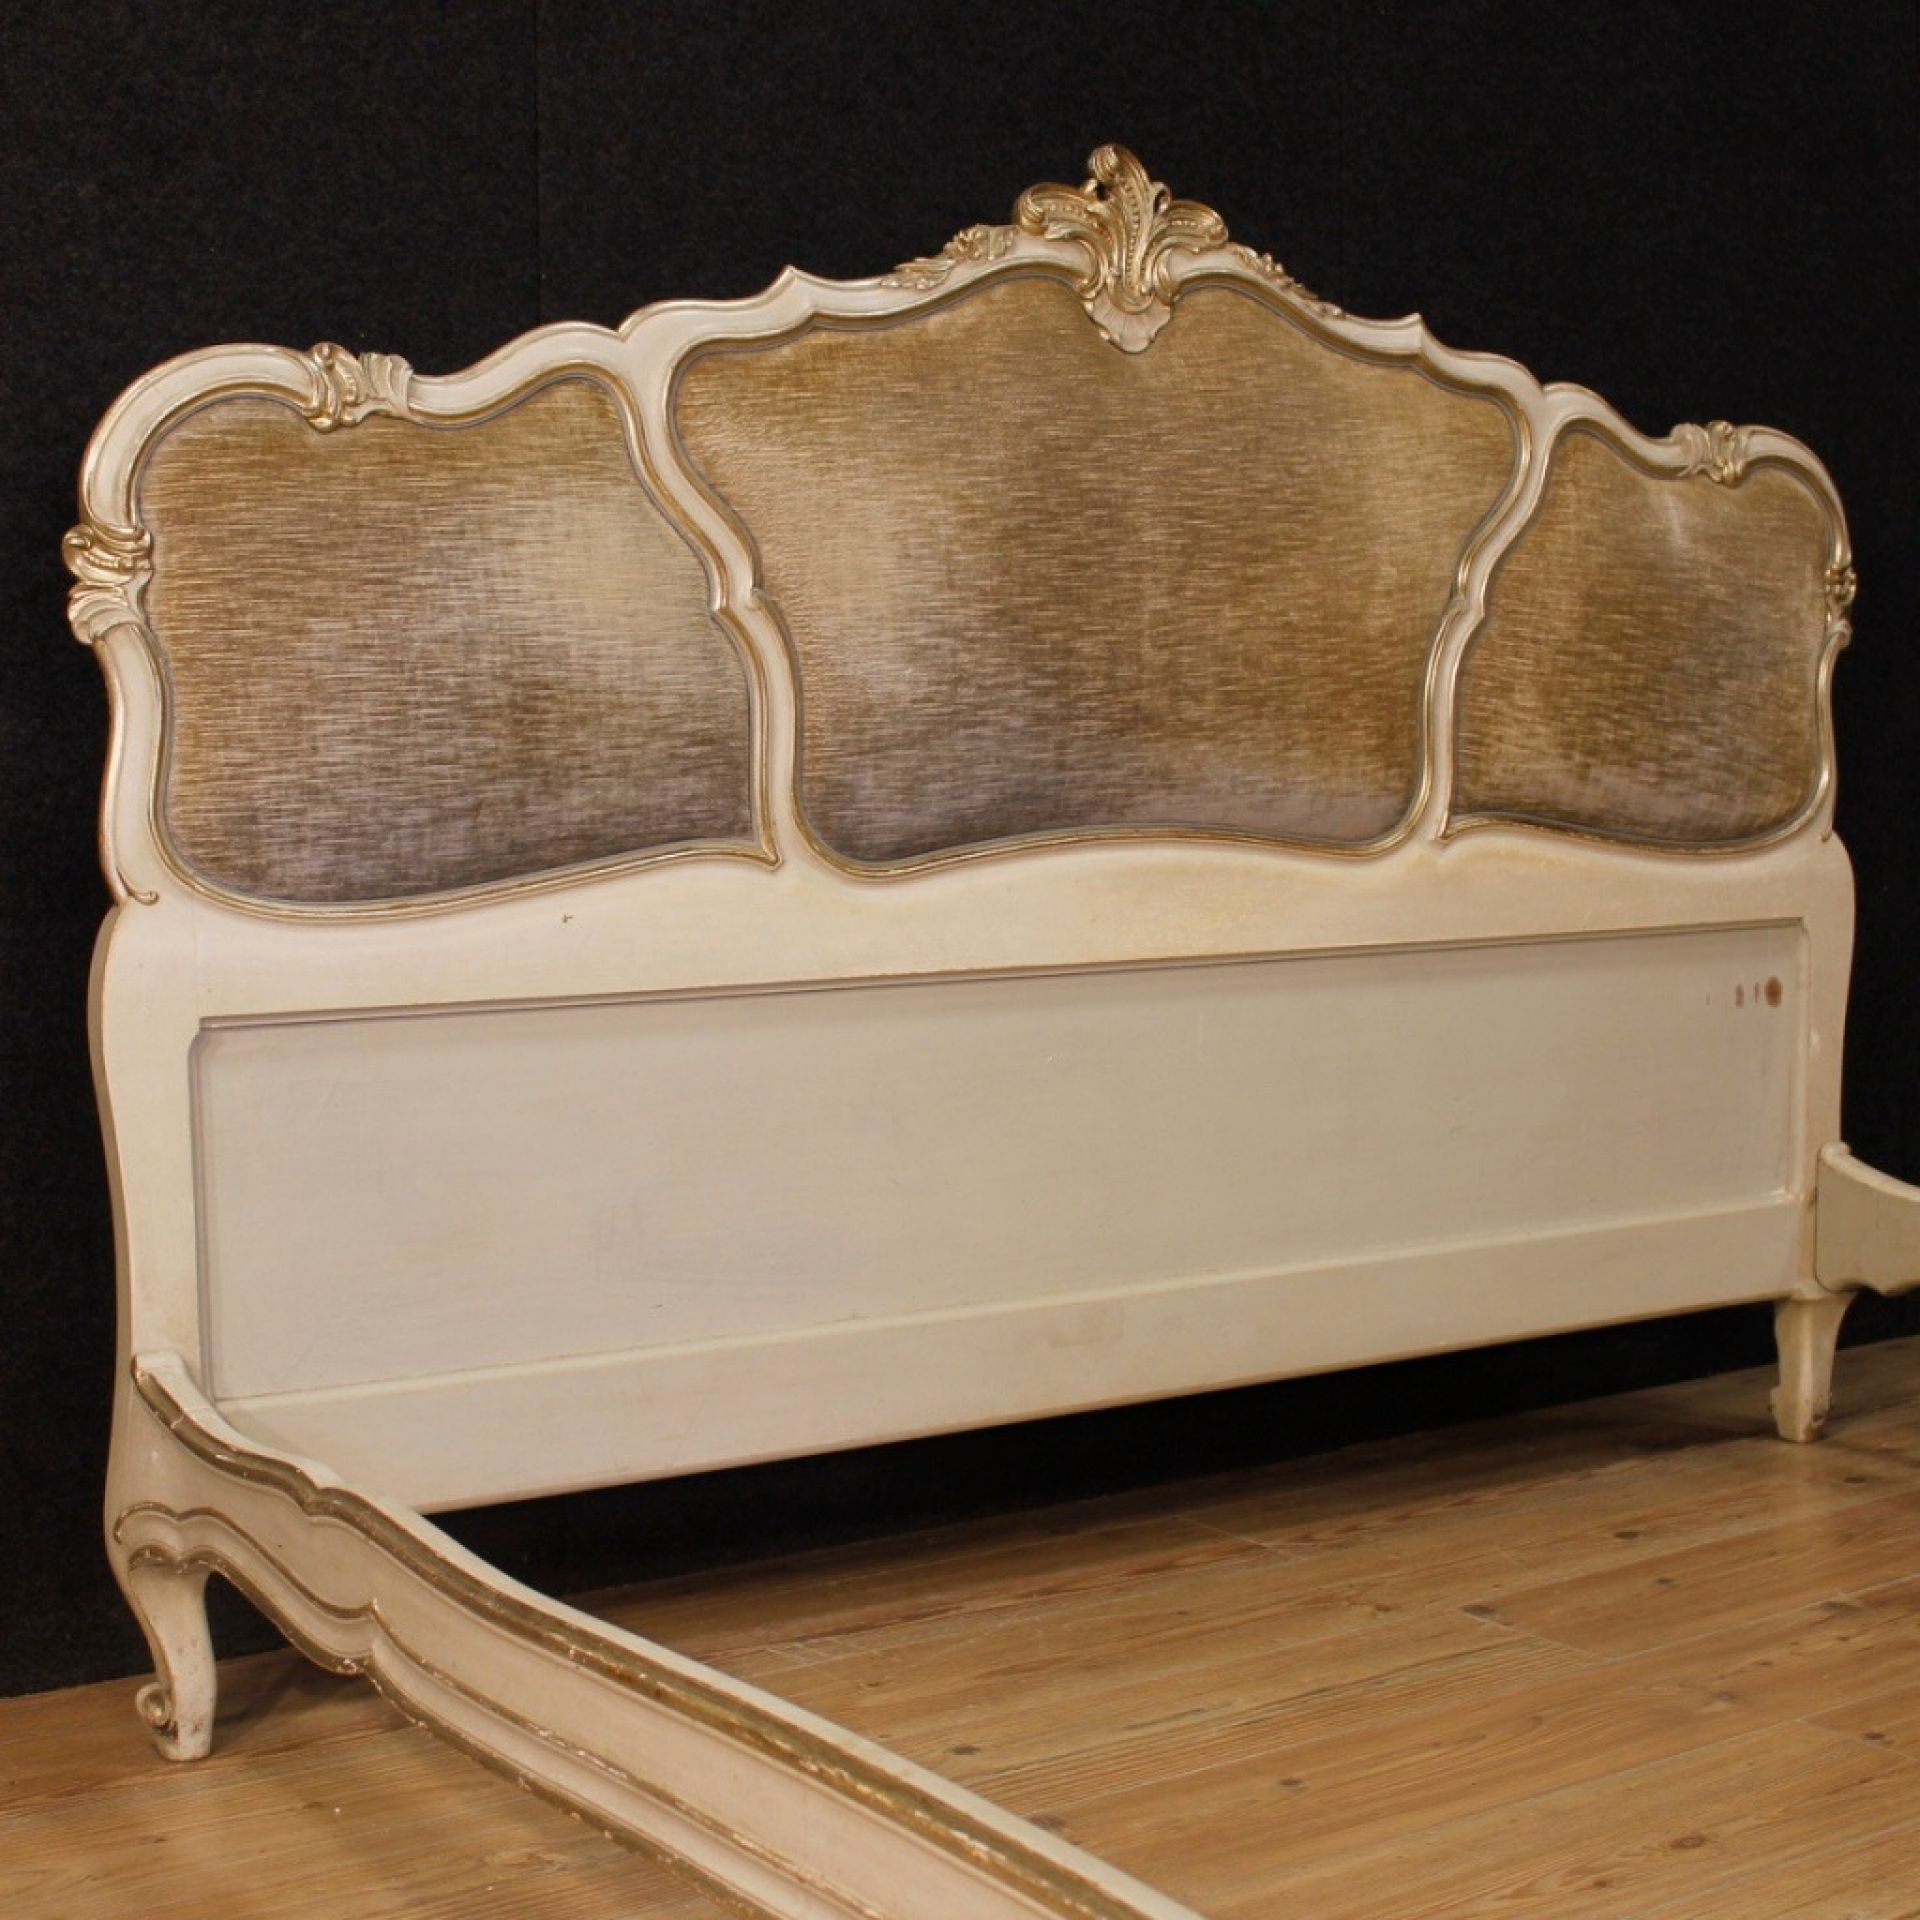 20th Century Lacquered and Silvered Wood and Velvet Venetian Bed, 1960